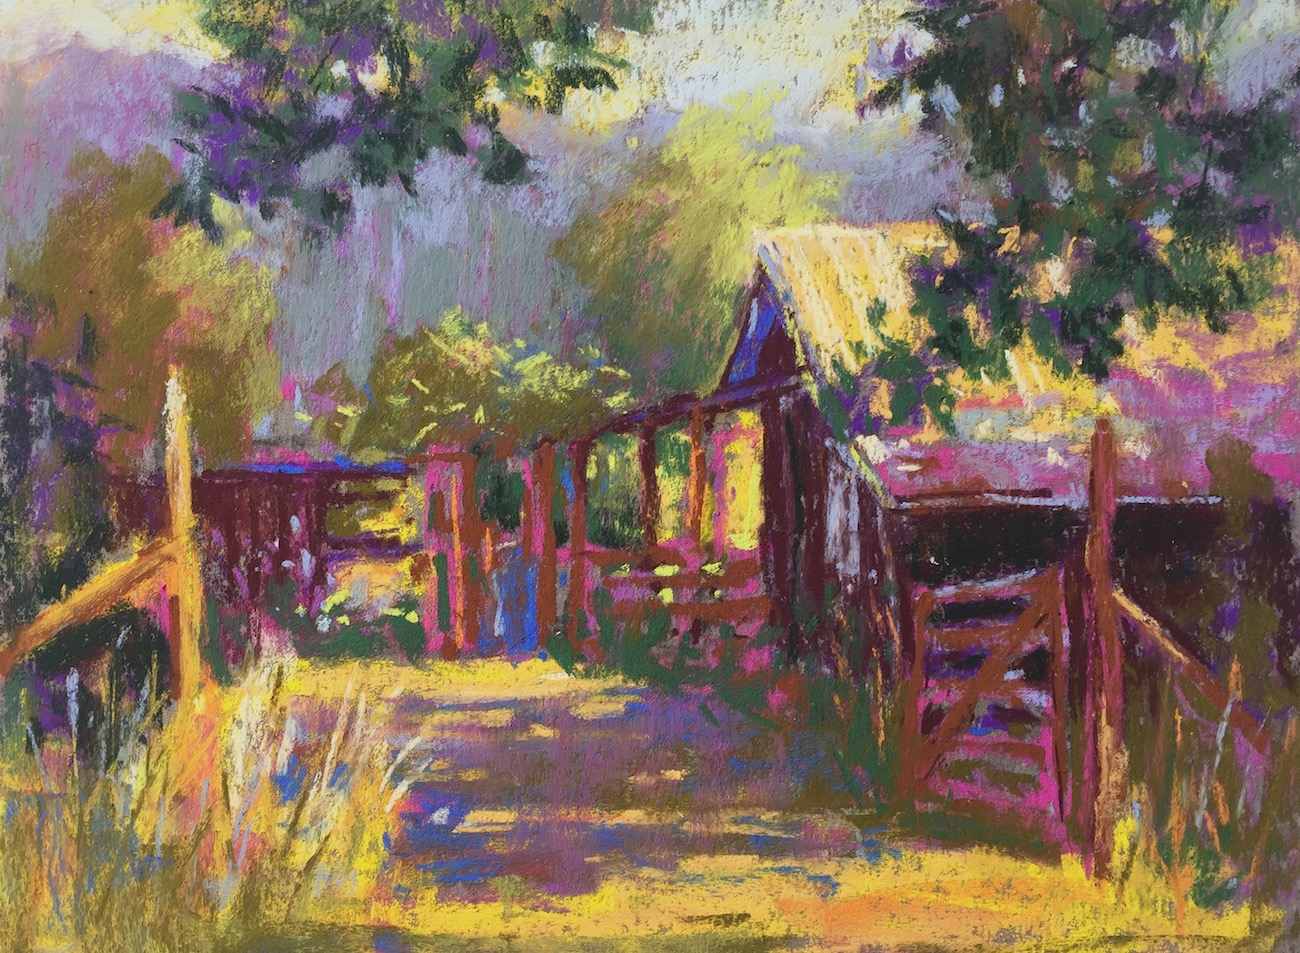 Tweaking a plein air painting in the studio: More definition and detail. At this stage I find myself picking away at the piece and I know it's time to stop! I know I will review it in the studio and can tweak the painting there.